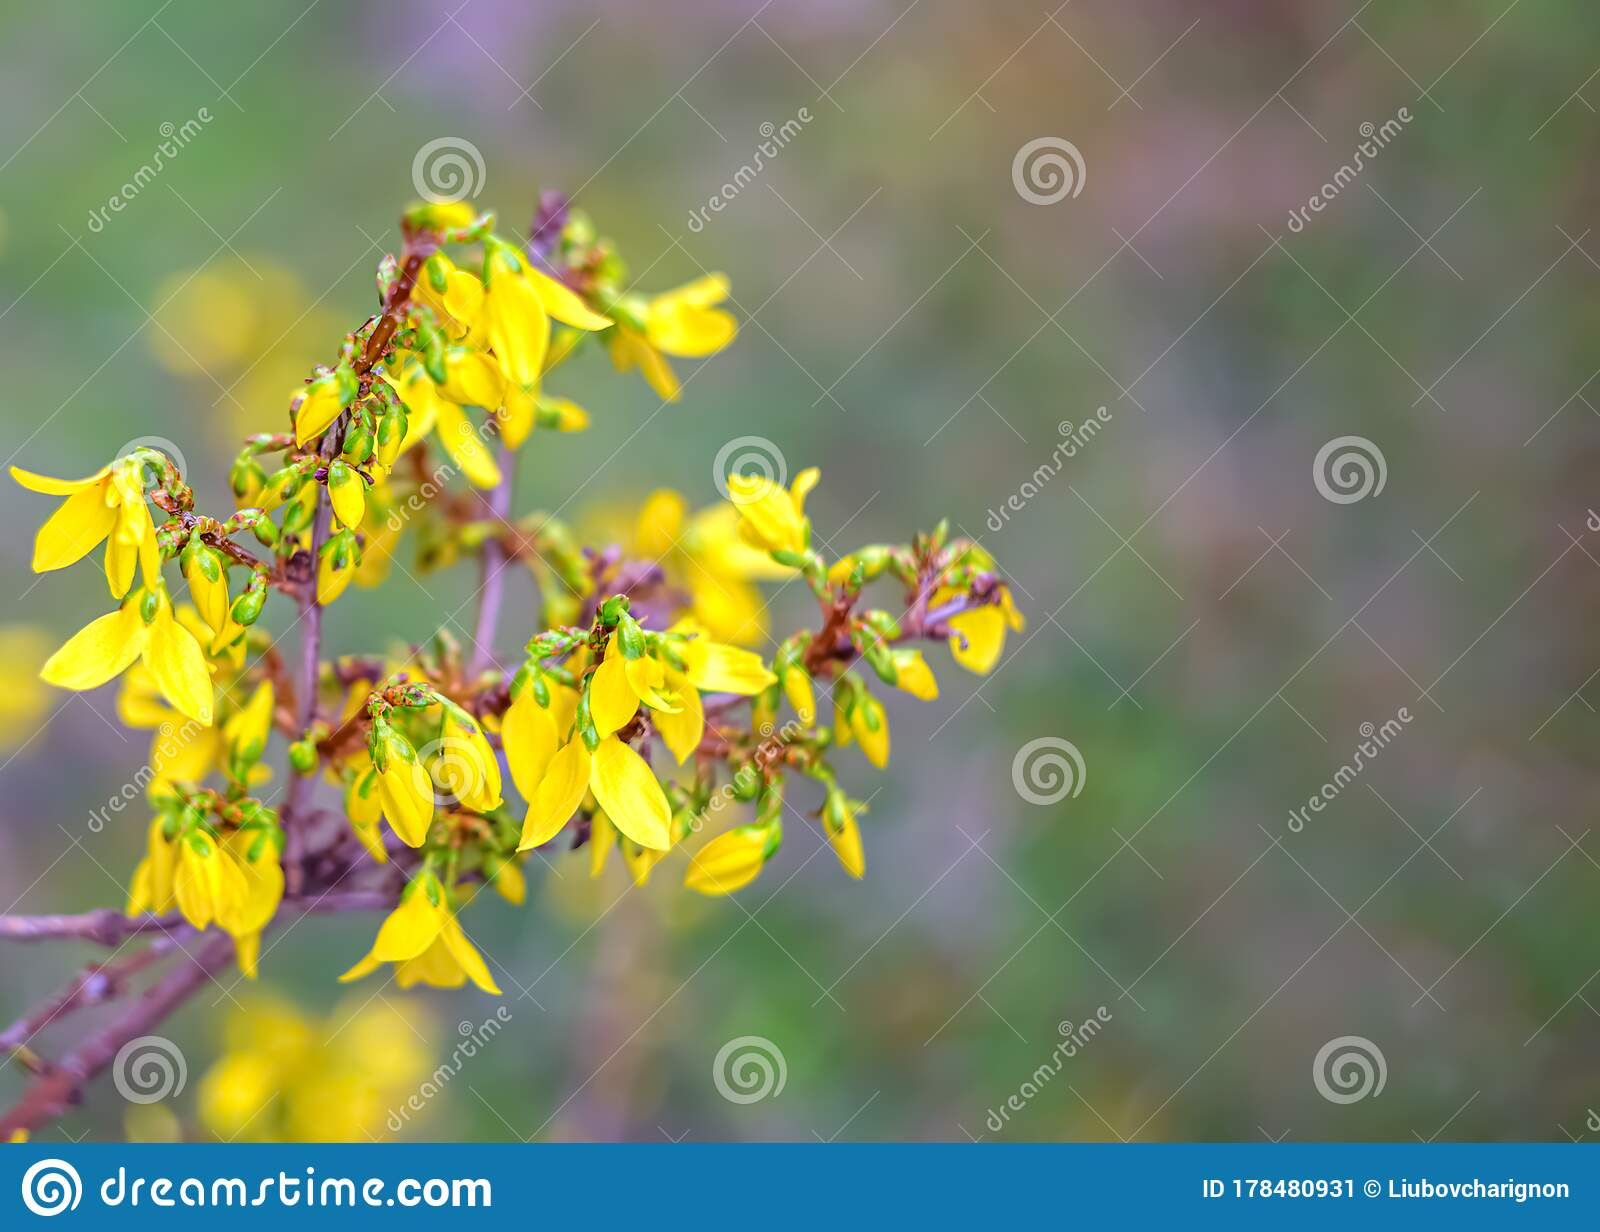 Forsythia Flowers In A Spring Day Nature Wallpaper Blurred Background With Yellow Florets In Springtime Stock Image Image Of Blooming Flower 178480931